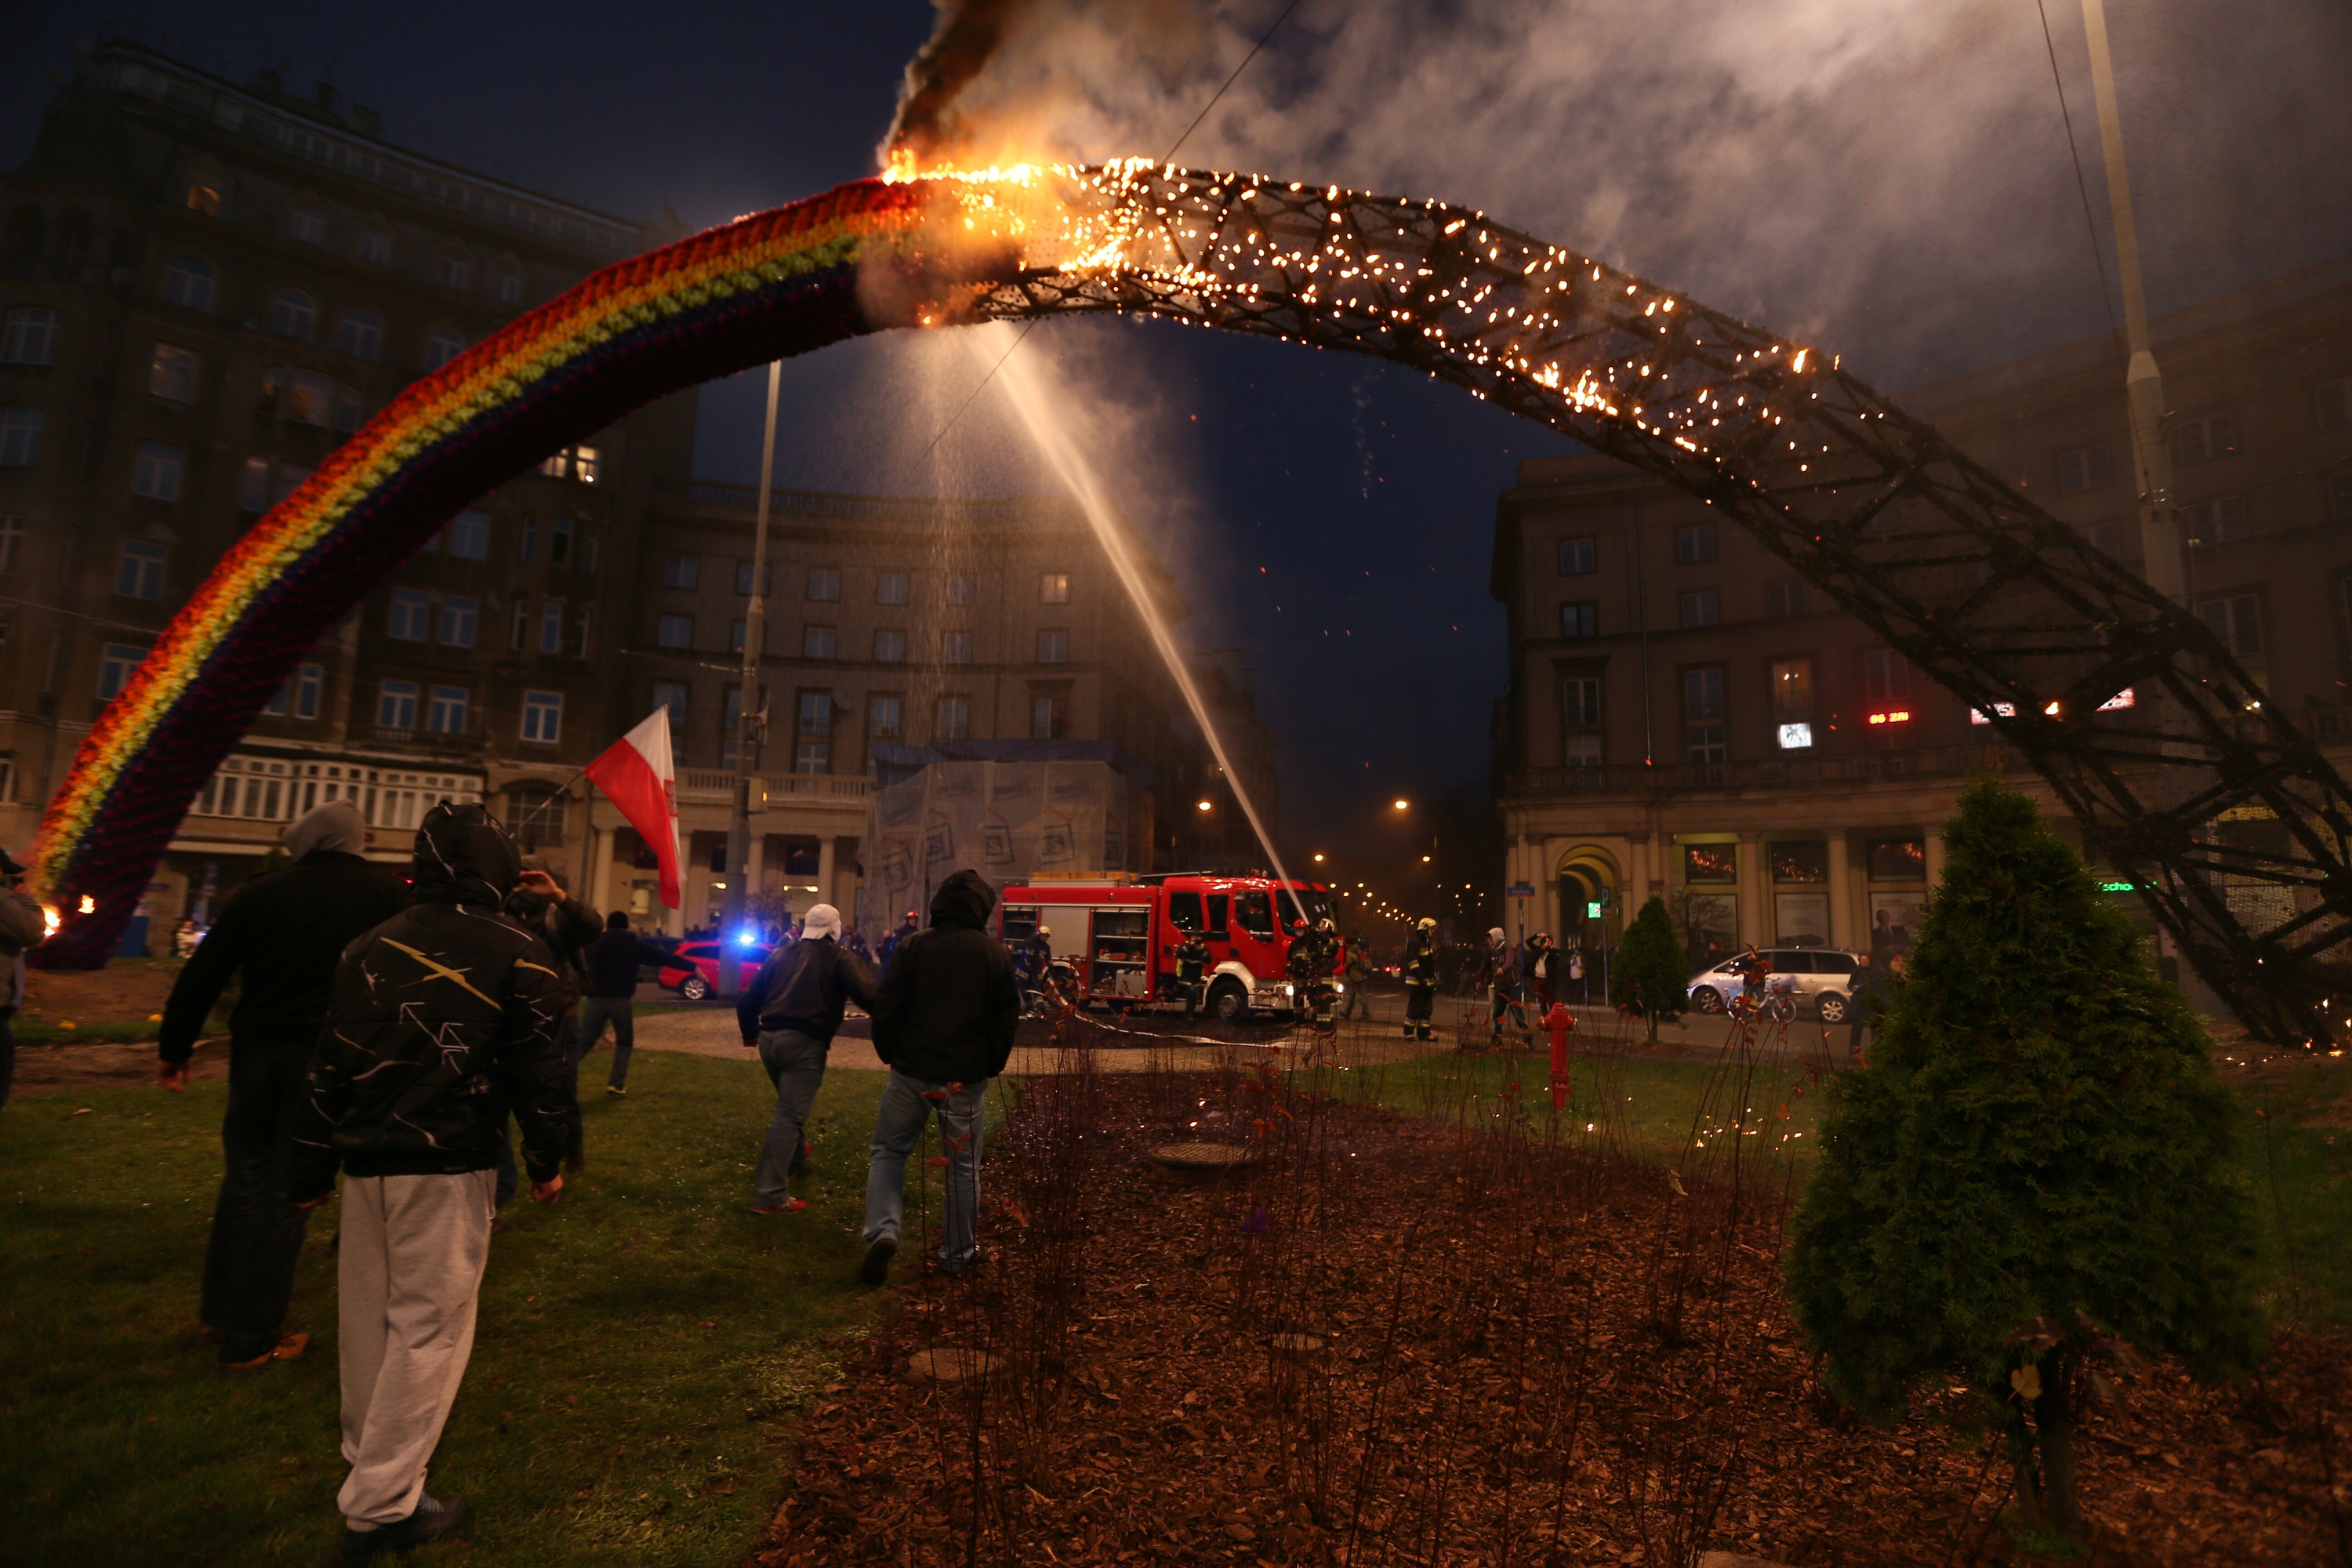 A 'Rainbow' installation is set on fire by demonstrators during the 'March of Independence' at the Savior Square in Warsaw, Poland, Nov. 11, 2013